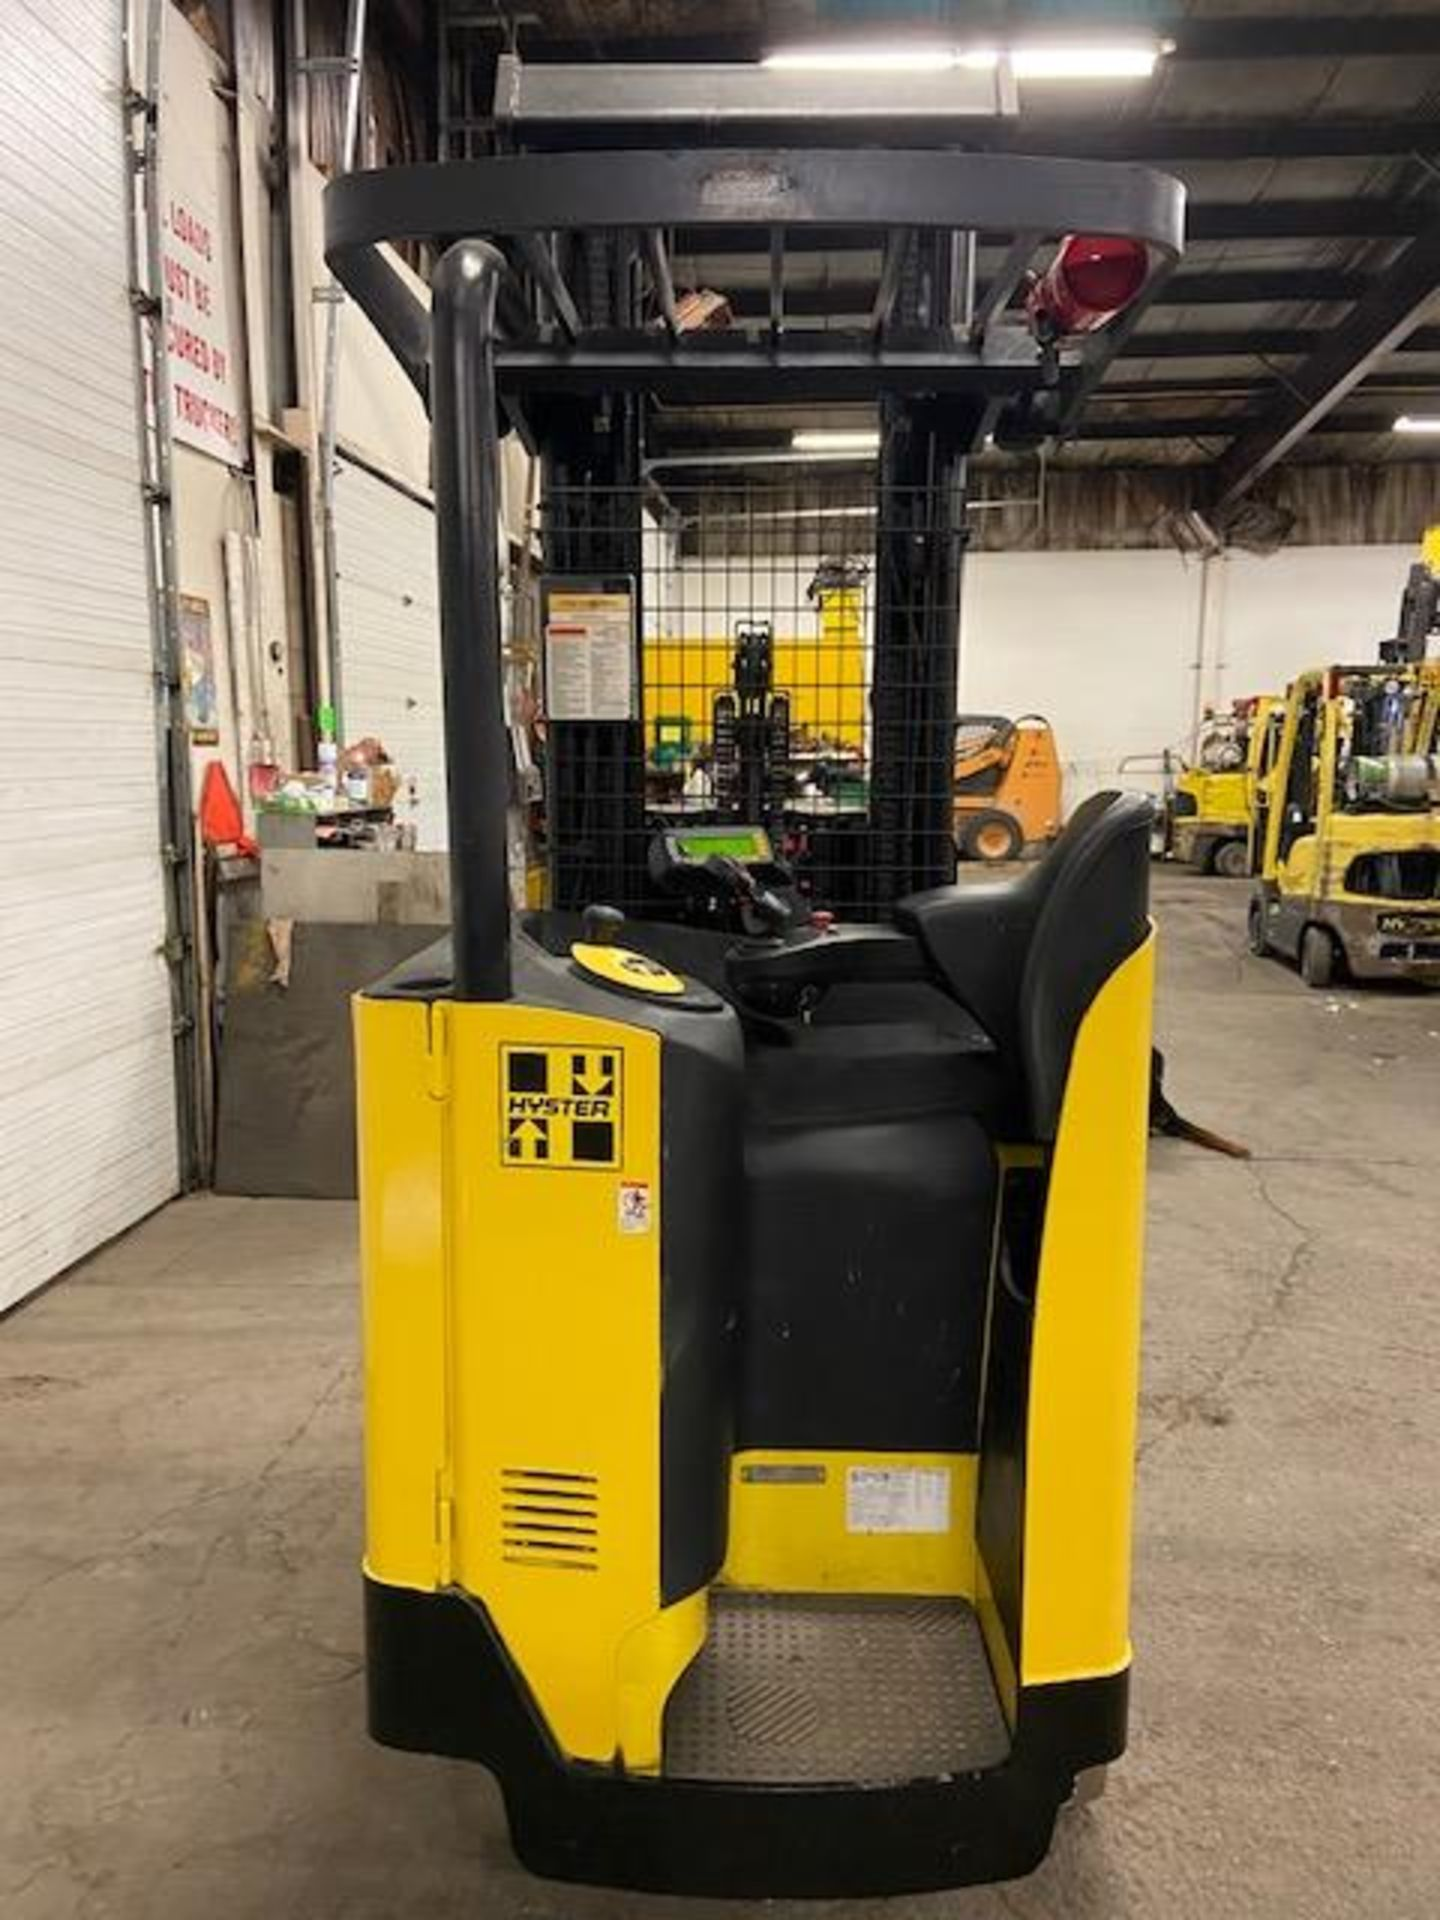 FREE CUSTOMS - Hyster Reach Truck Pallet Lifter REACH TRUCK electric 3500lbs with sideshift 3- - Image 3 of 4